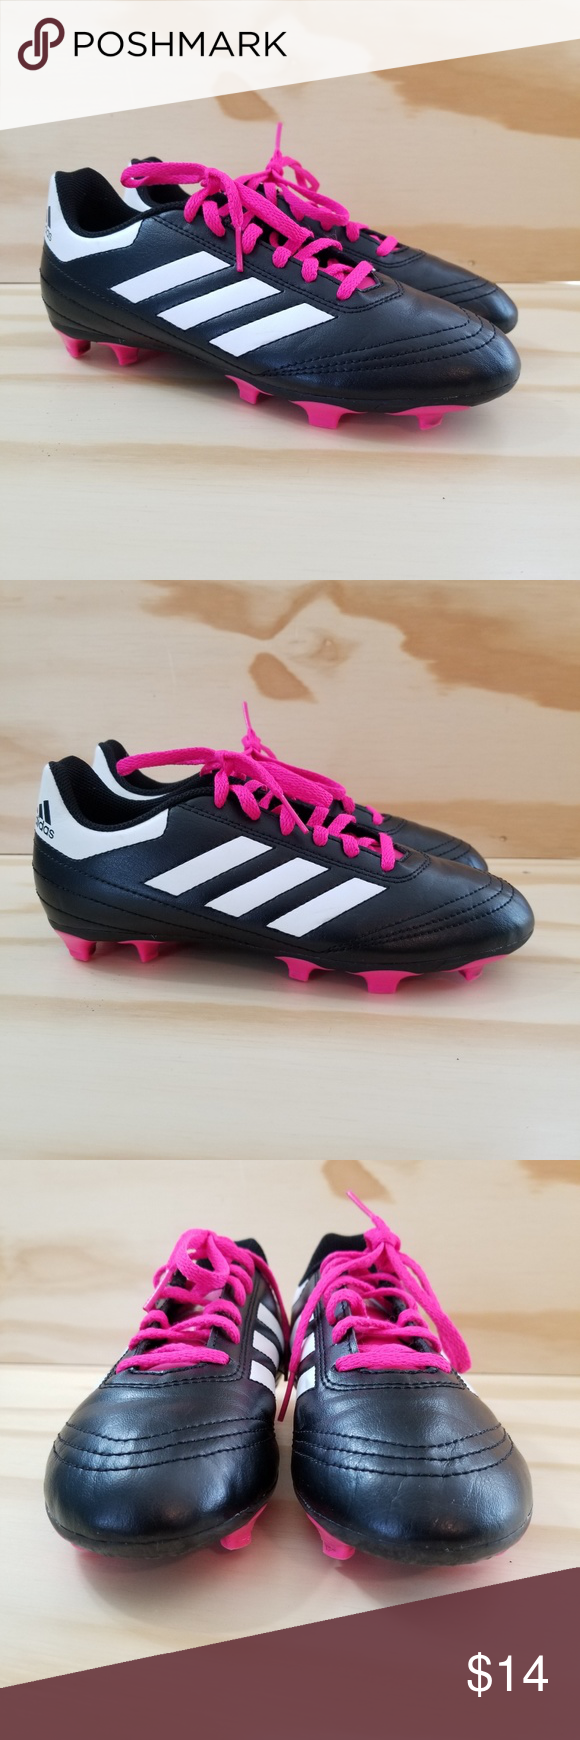 Adidas Soccer Cleats Girls Size 4y Adidas Soccer Cleats Sz 4 Black Pink Girls Low Top Laces Outdoors Games Soccer Cleats Adidas Adidas Soccer Soccer Cleats